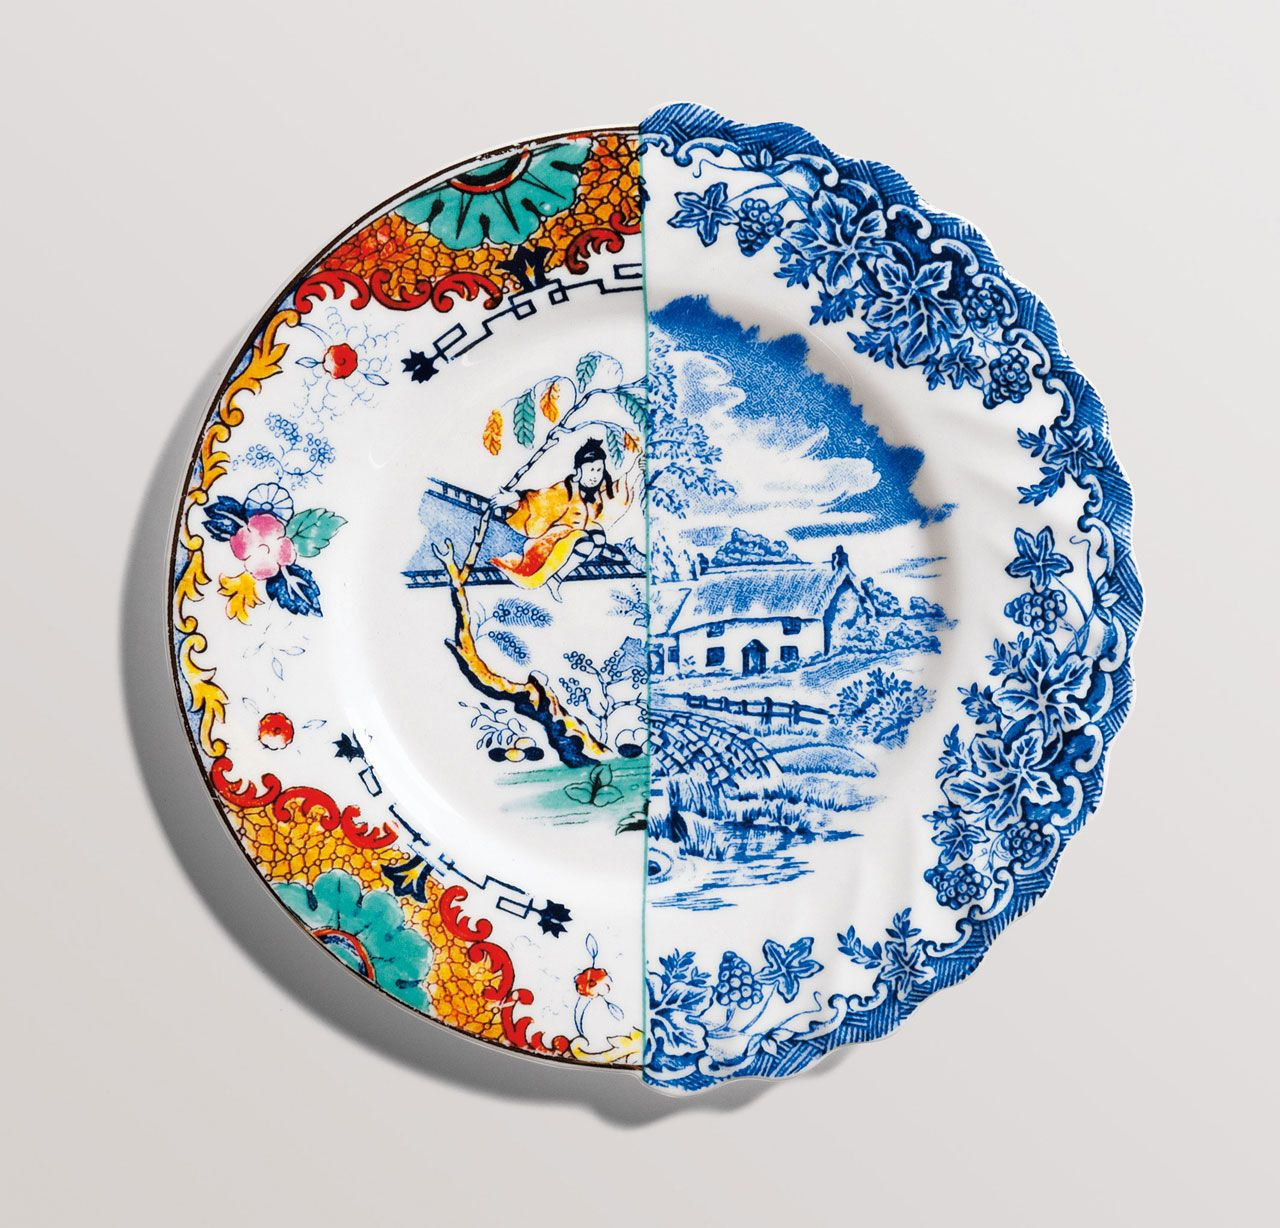 HYBRID Handcrafted dinnerware by CTRLZAK for SELETTI  sc 1 st  Pinterest & HYBRID Handcrafted dinnerware by CTRLZAK for SELETTI | Craft Ideas ...